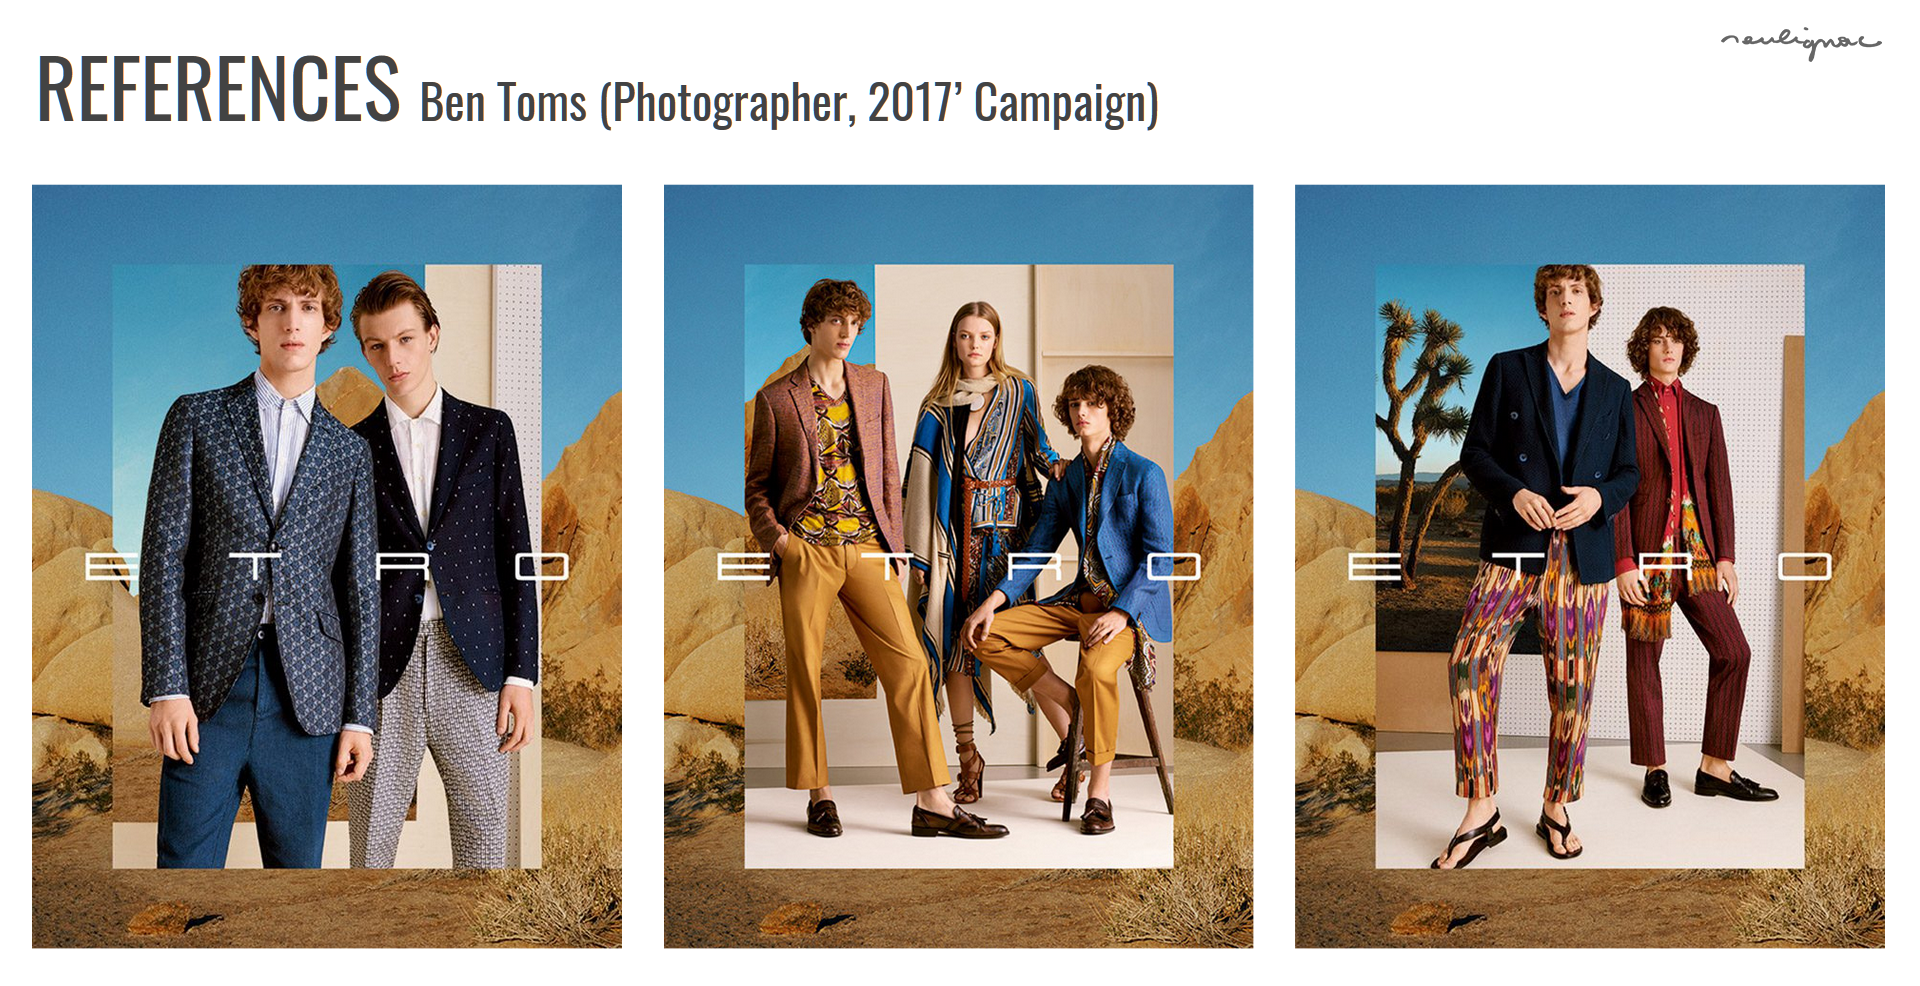 Etro China - Digital Summer Campaign, Brand exploration BEN TOMS - Francois Soulignac - Creative & Art Direction - Labbrand Madjor Shanghai, China